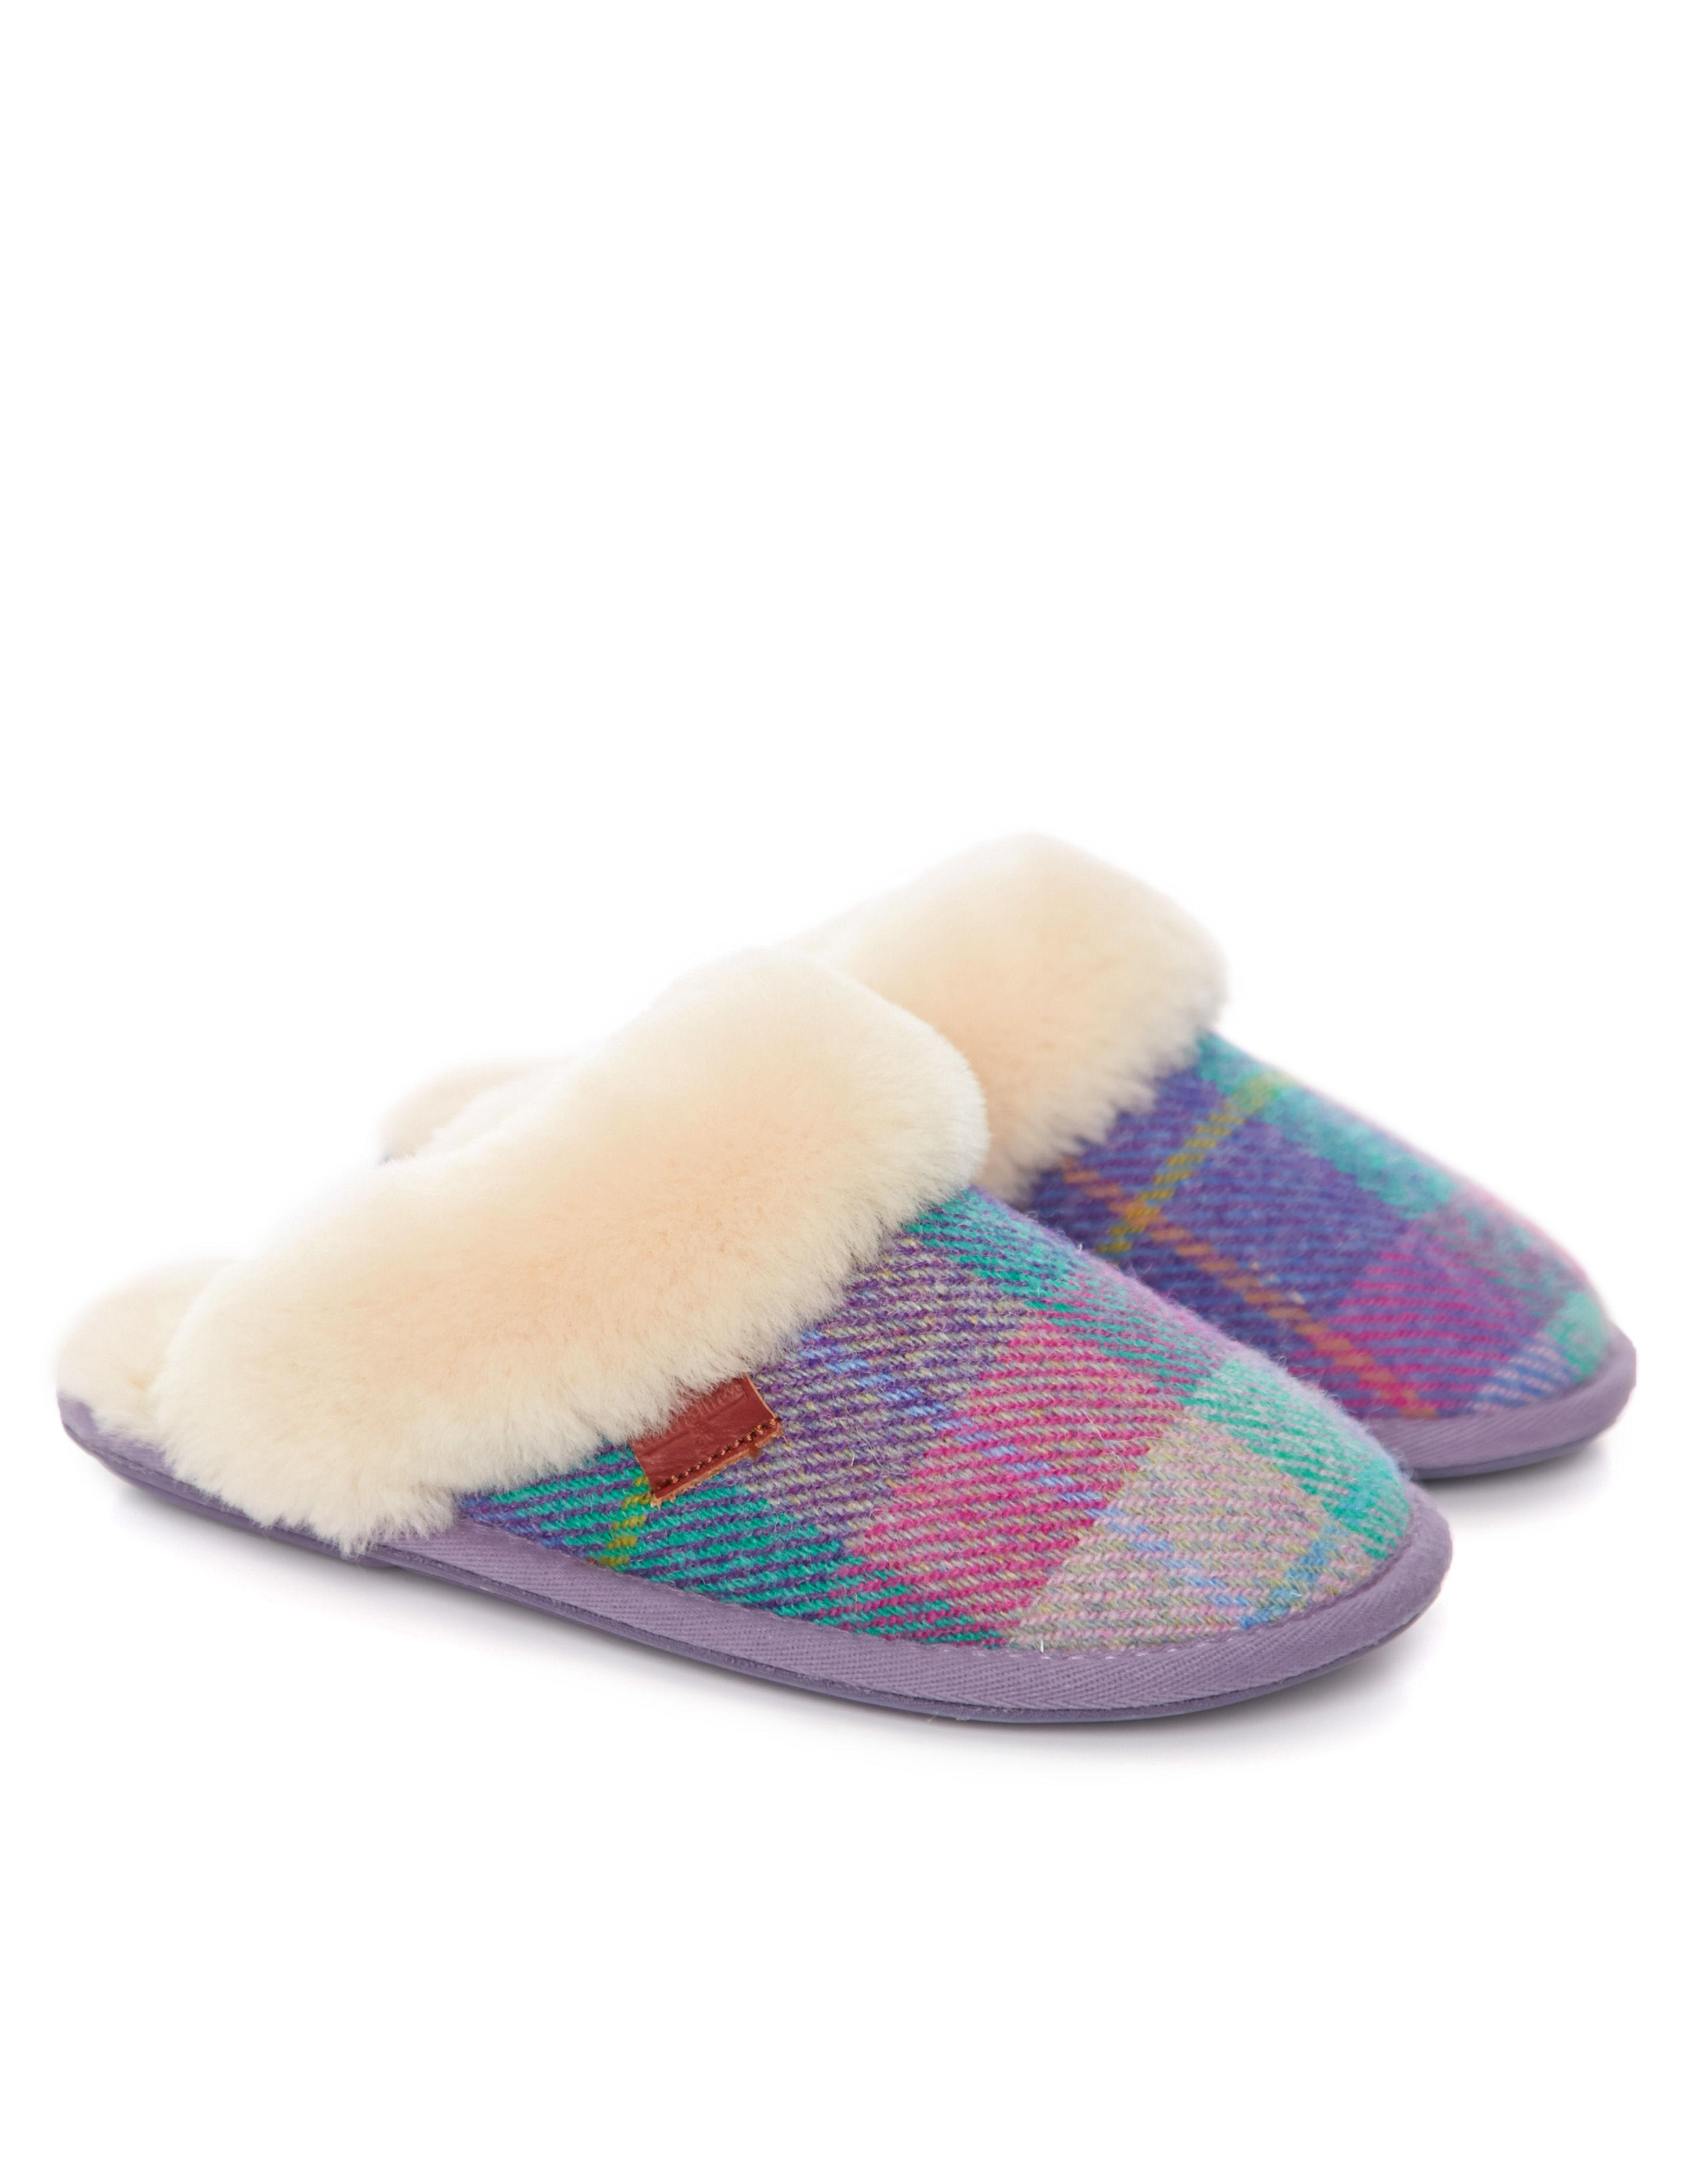 slipper competitive athletics p women florence s price ferret womens bedroom patchwork